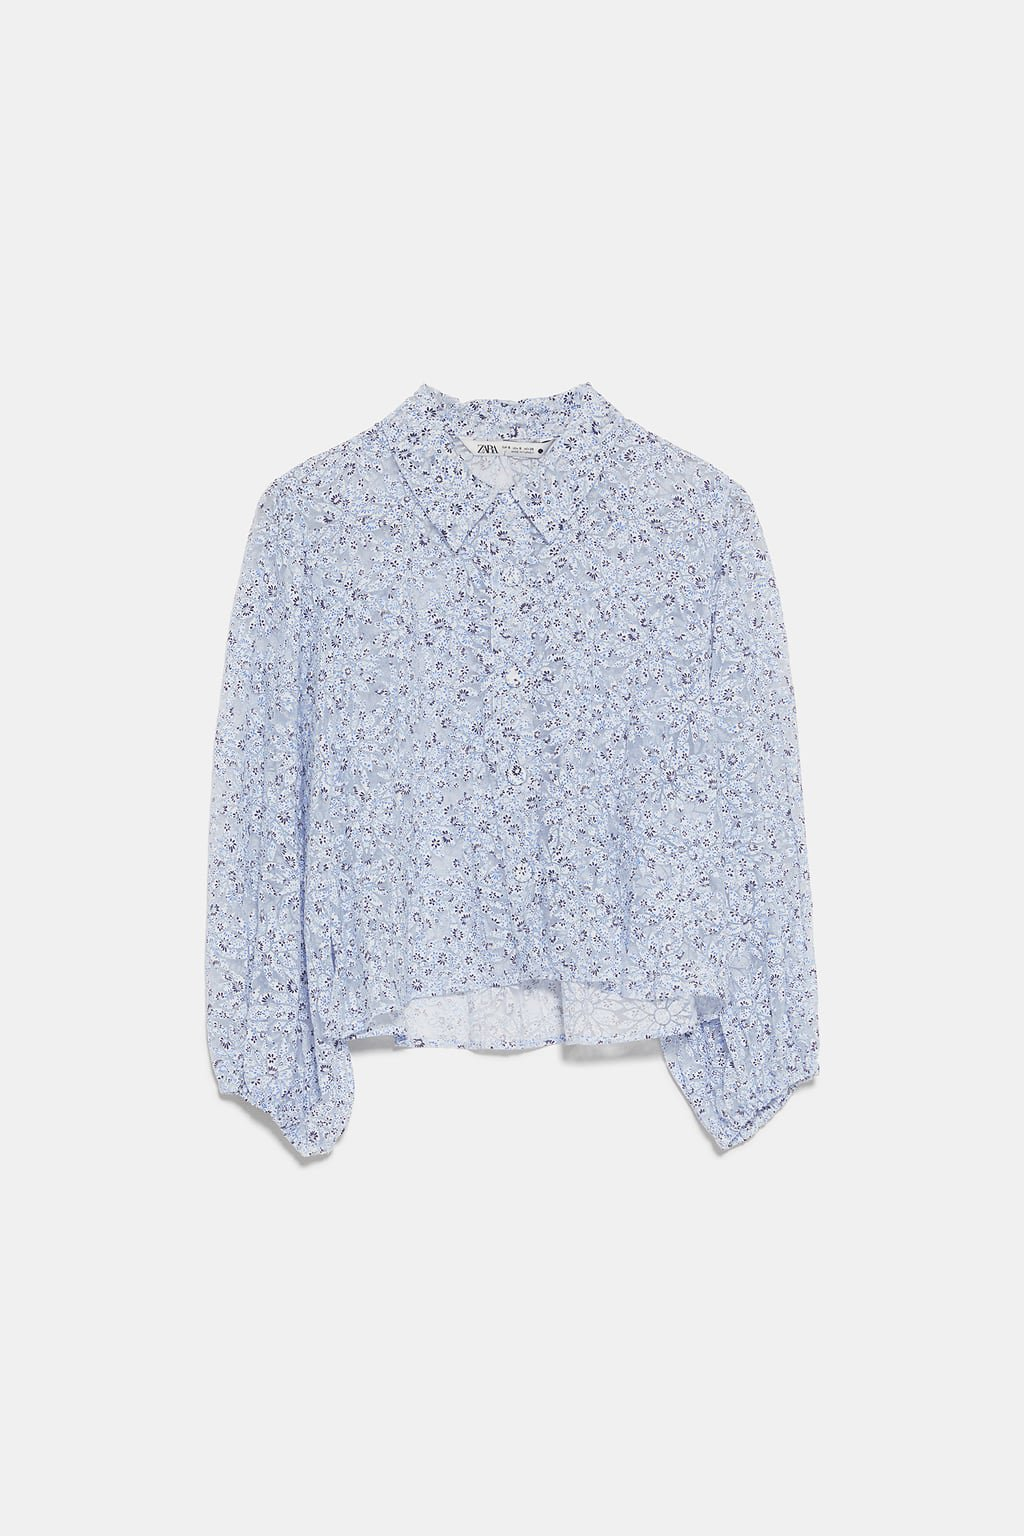 Trend - FLORAL ORGANZA BLOUSE - NEW IN-WOMAN | ZARA New Zealand